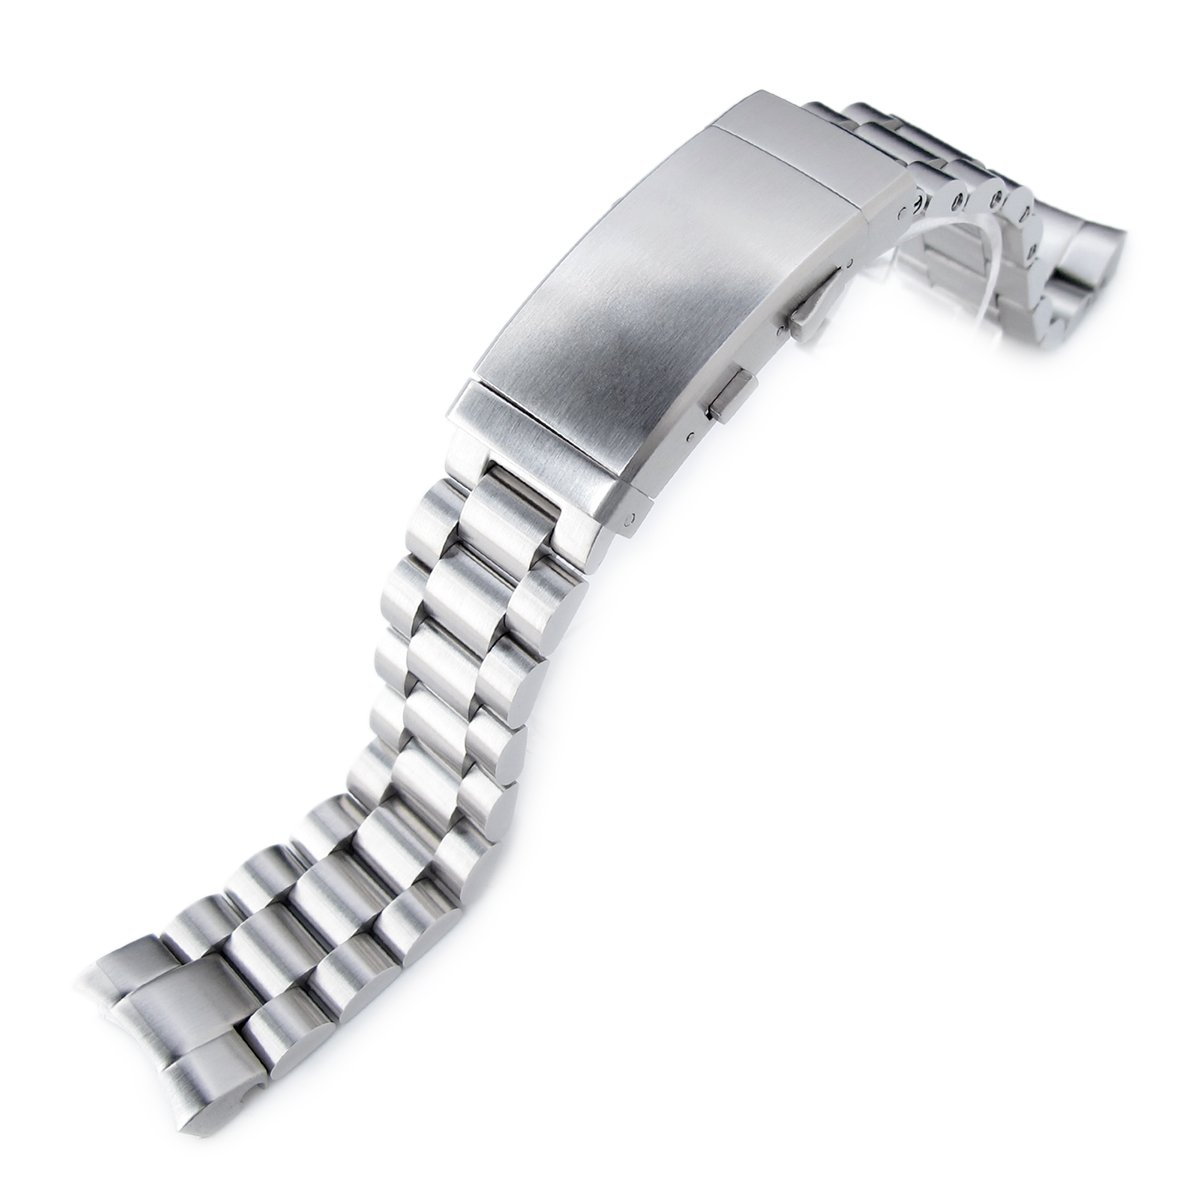 20mm Endmill Watch Band for SEIKO Sumo SBDC001 SBDC003 SBDC031 SBDC033, Wetsuit Ratchet Buckle